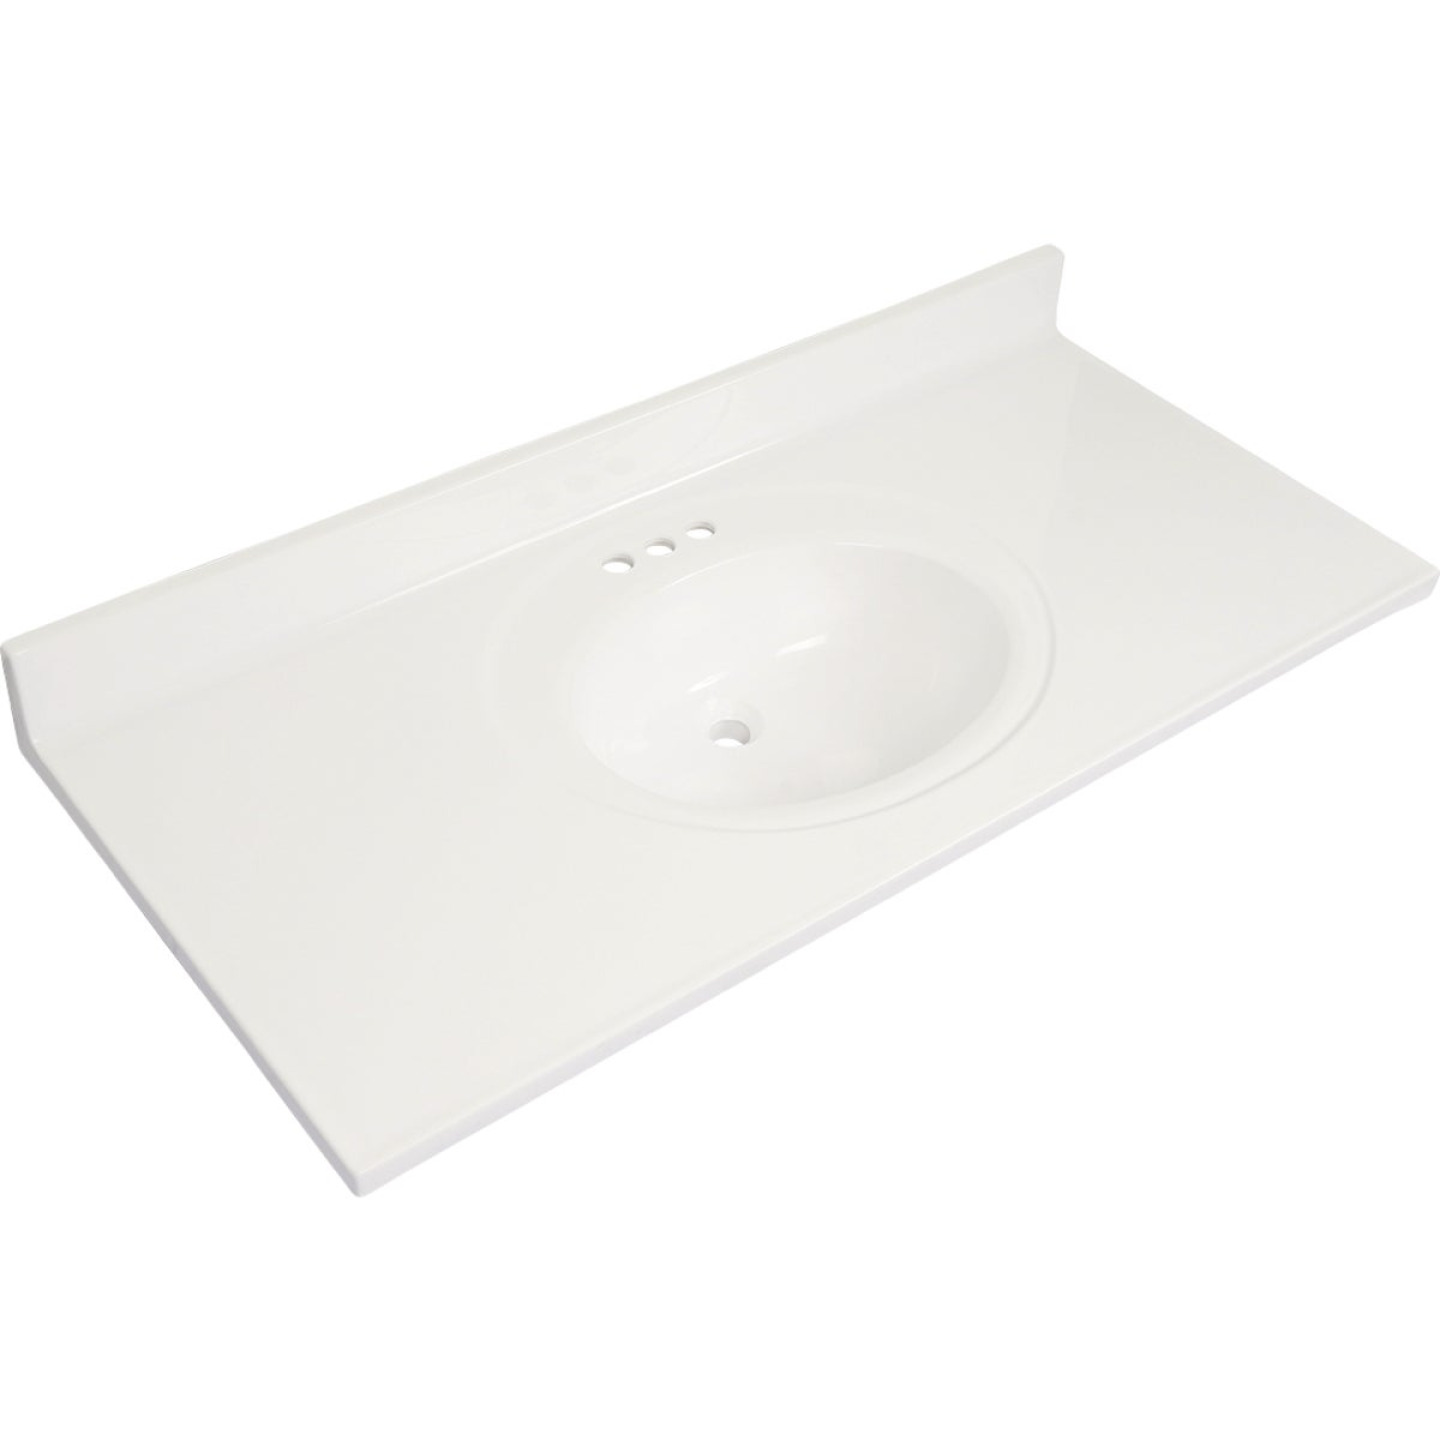 Modular Vanity Tops 49 In. W x 22 In. D Solid White Cultured Marble Flat Edge Vanity Top with Oval Bowl Image 1